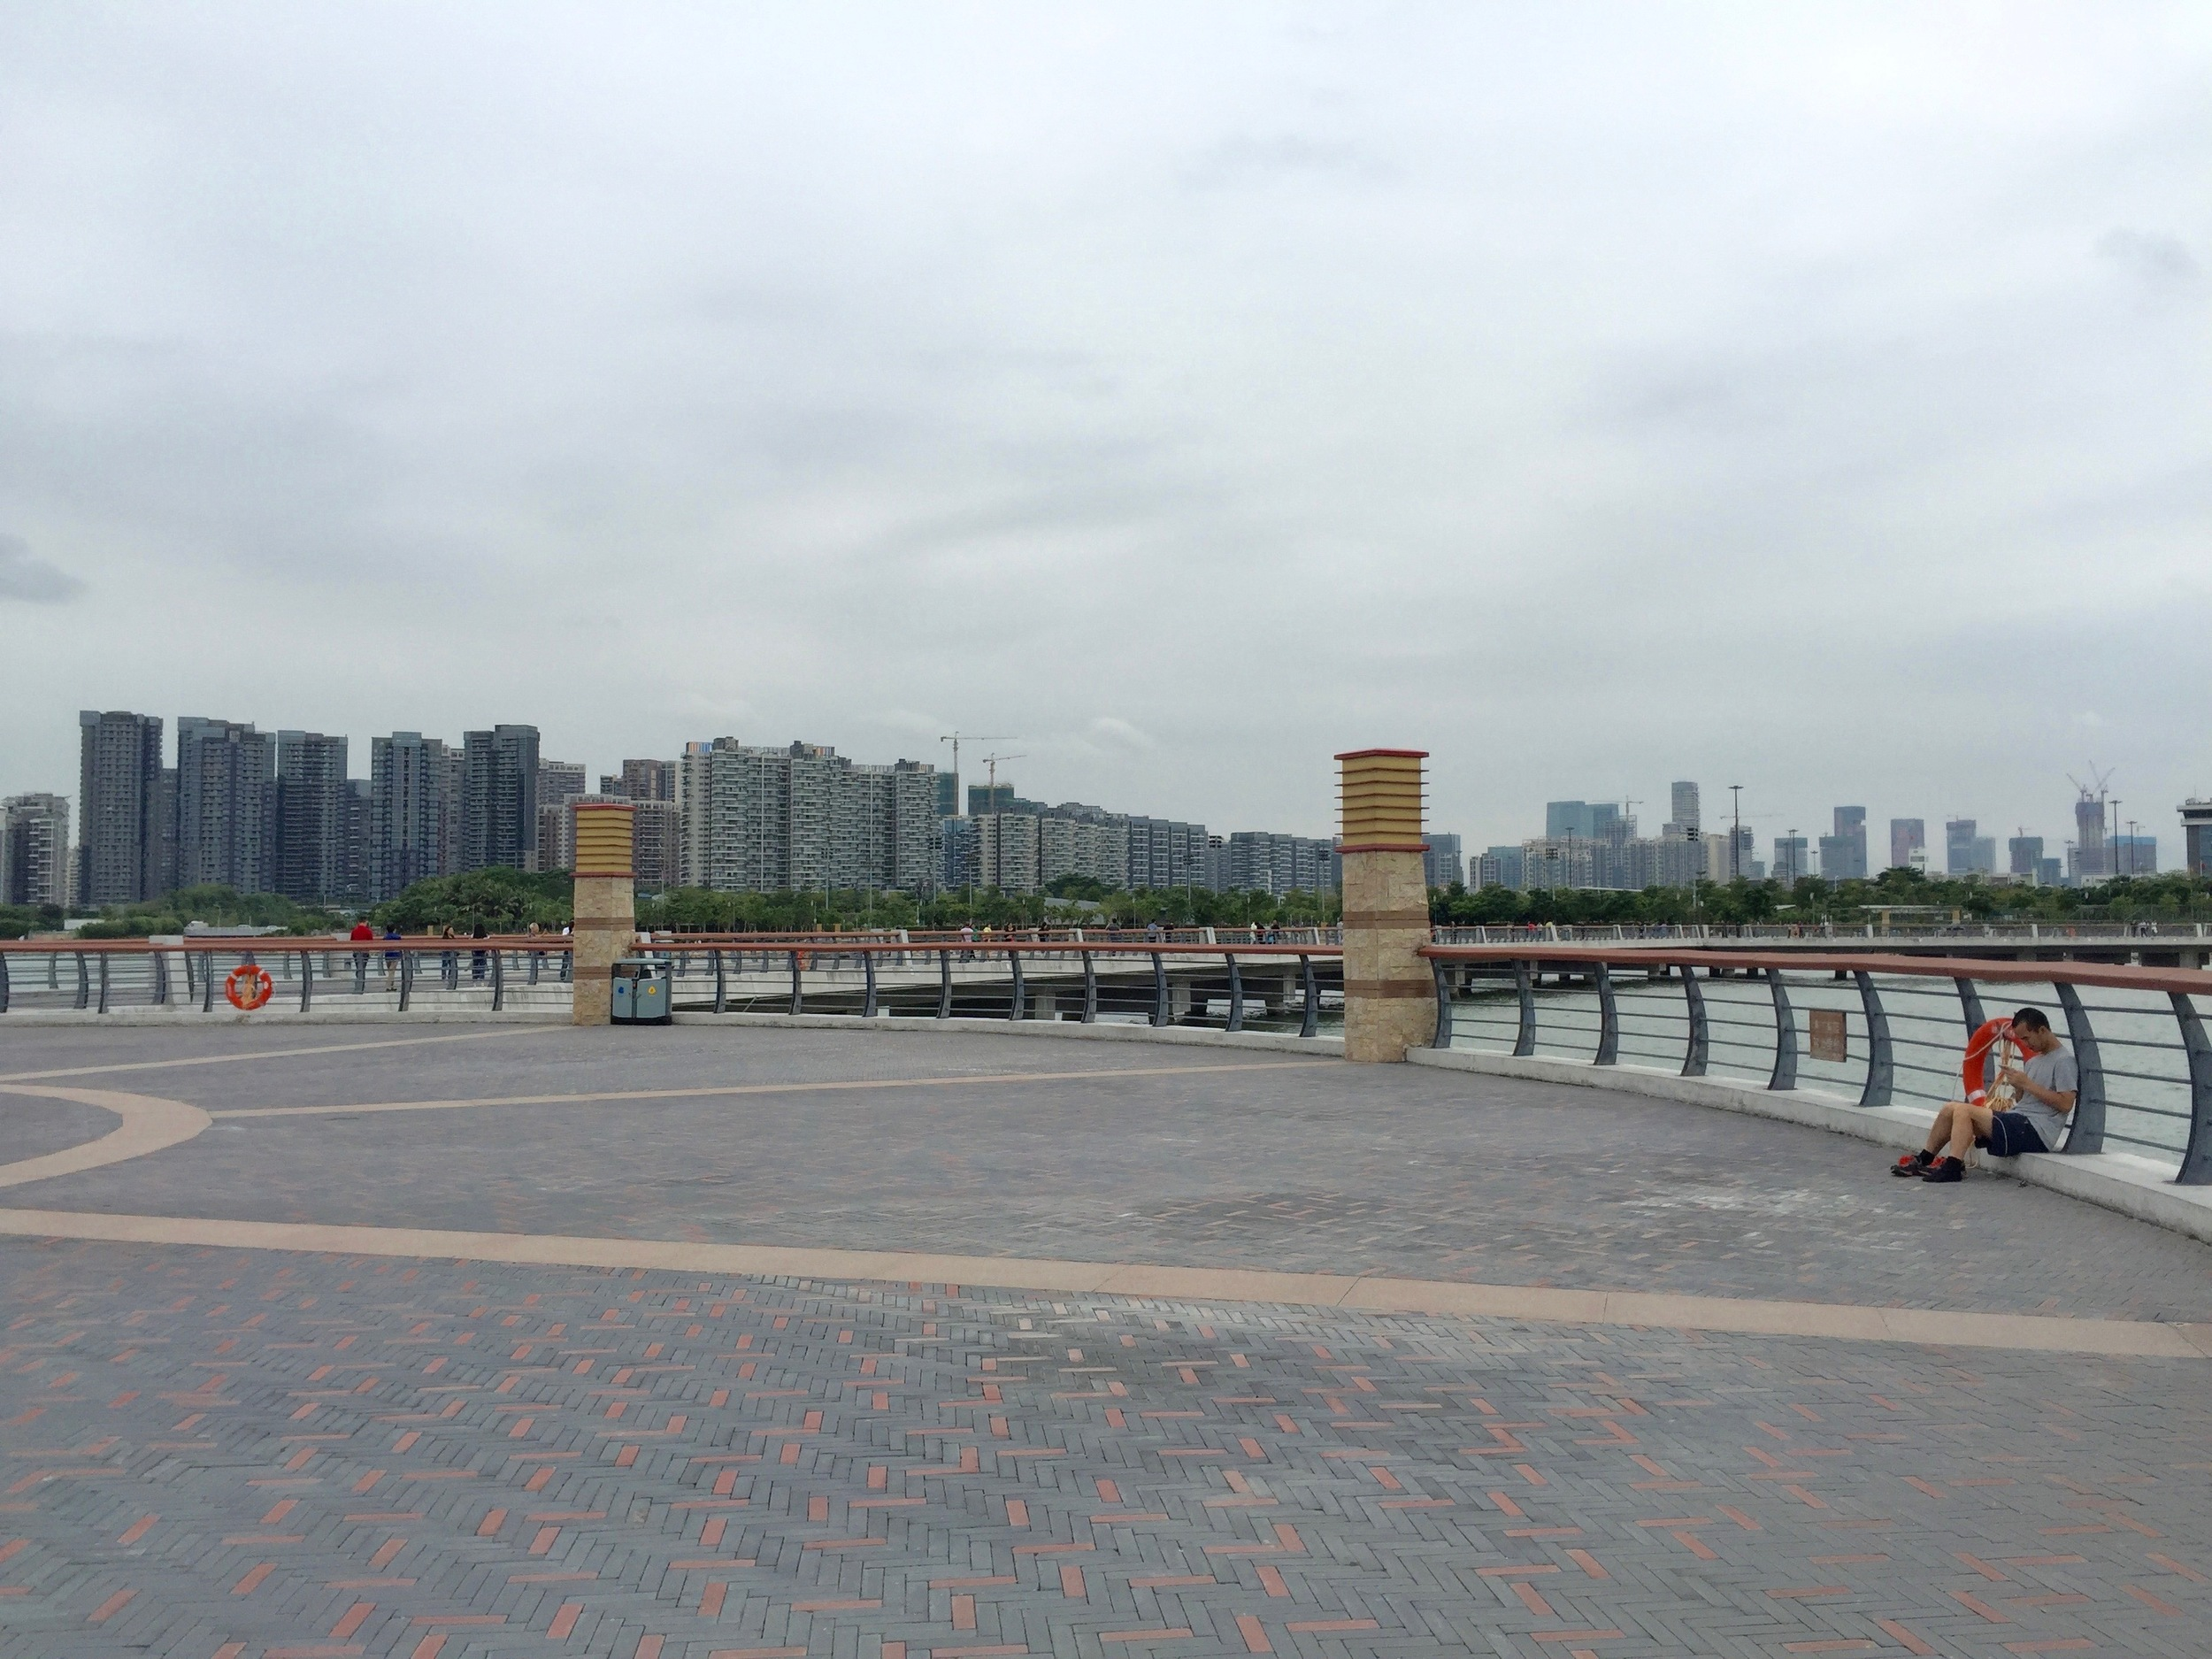 View of Shenzhen from the pier.